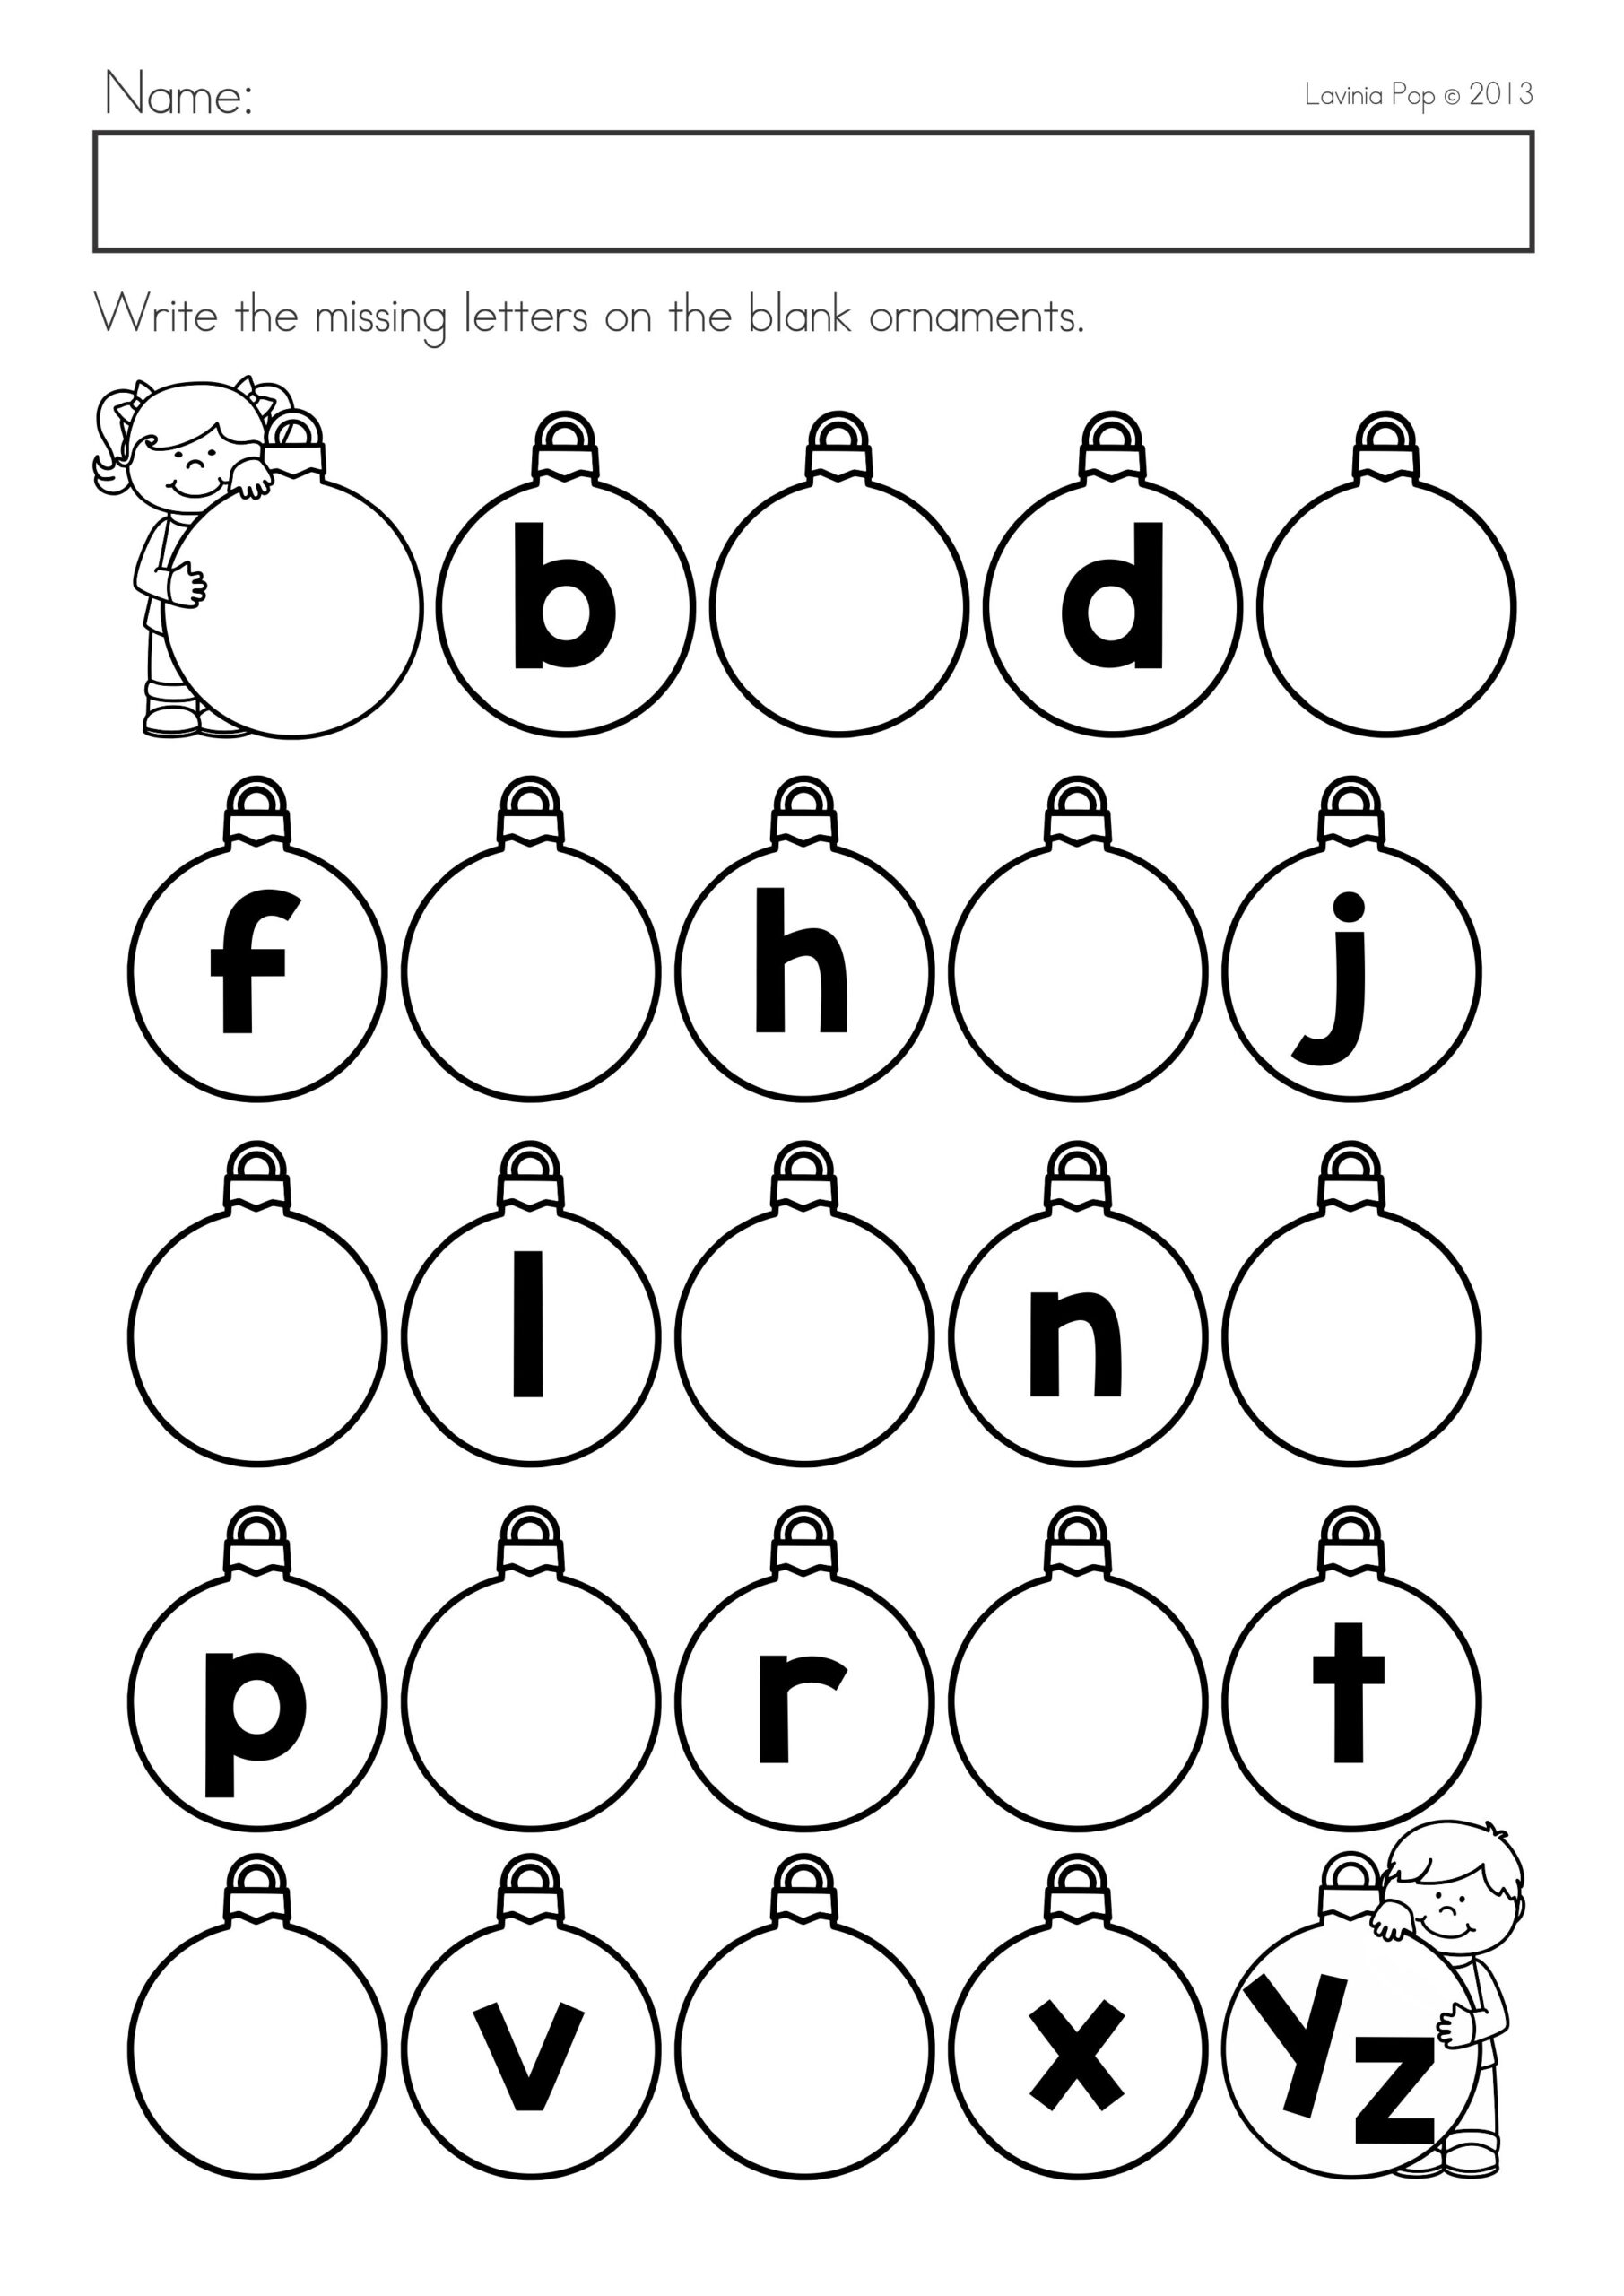 Alphabet Sequencing Worksheets For Kindergarten regarding Alphabet Sequencing Worksheets